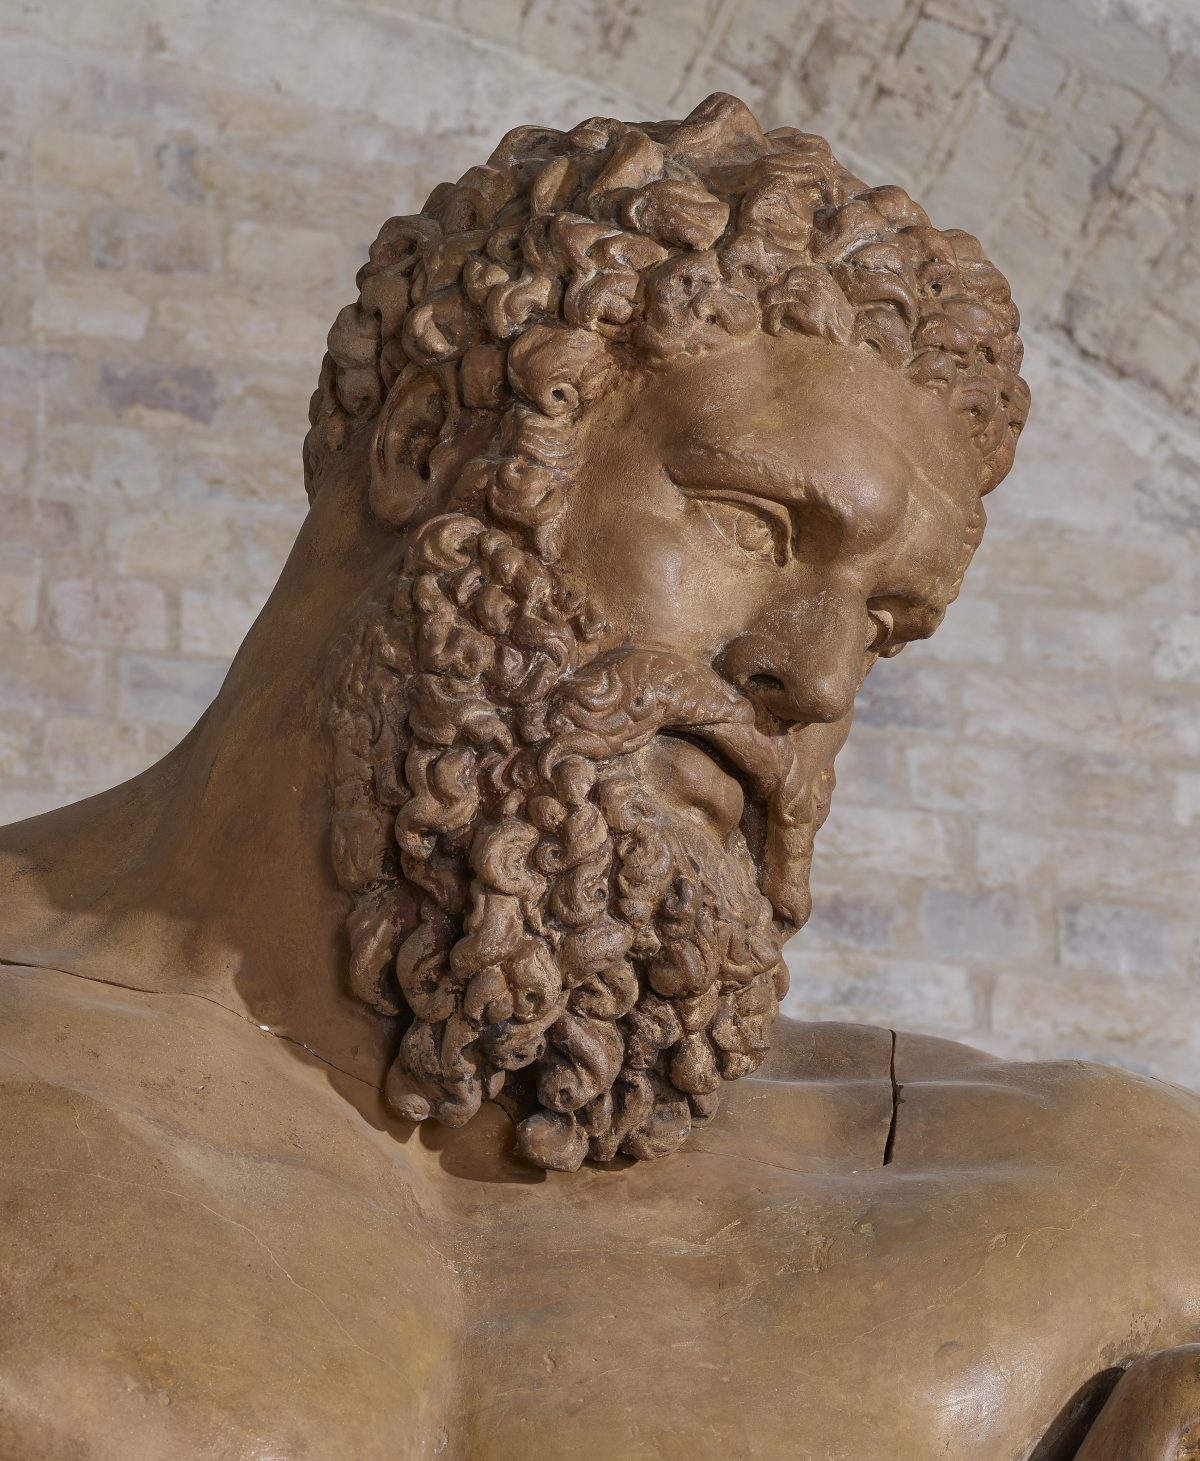 plaster cast head of classical statute Farnese Hercules